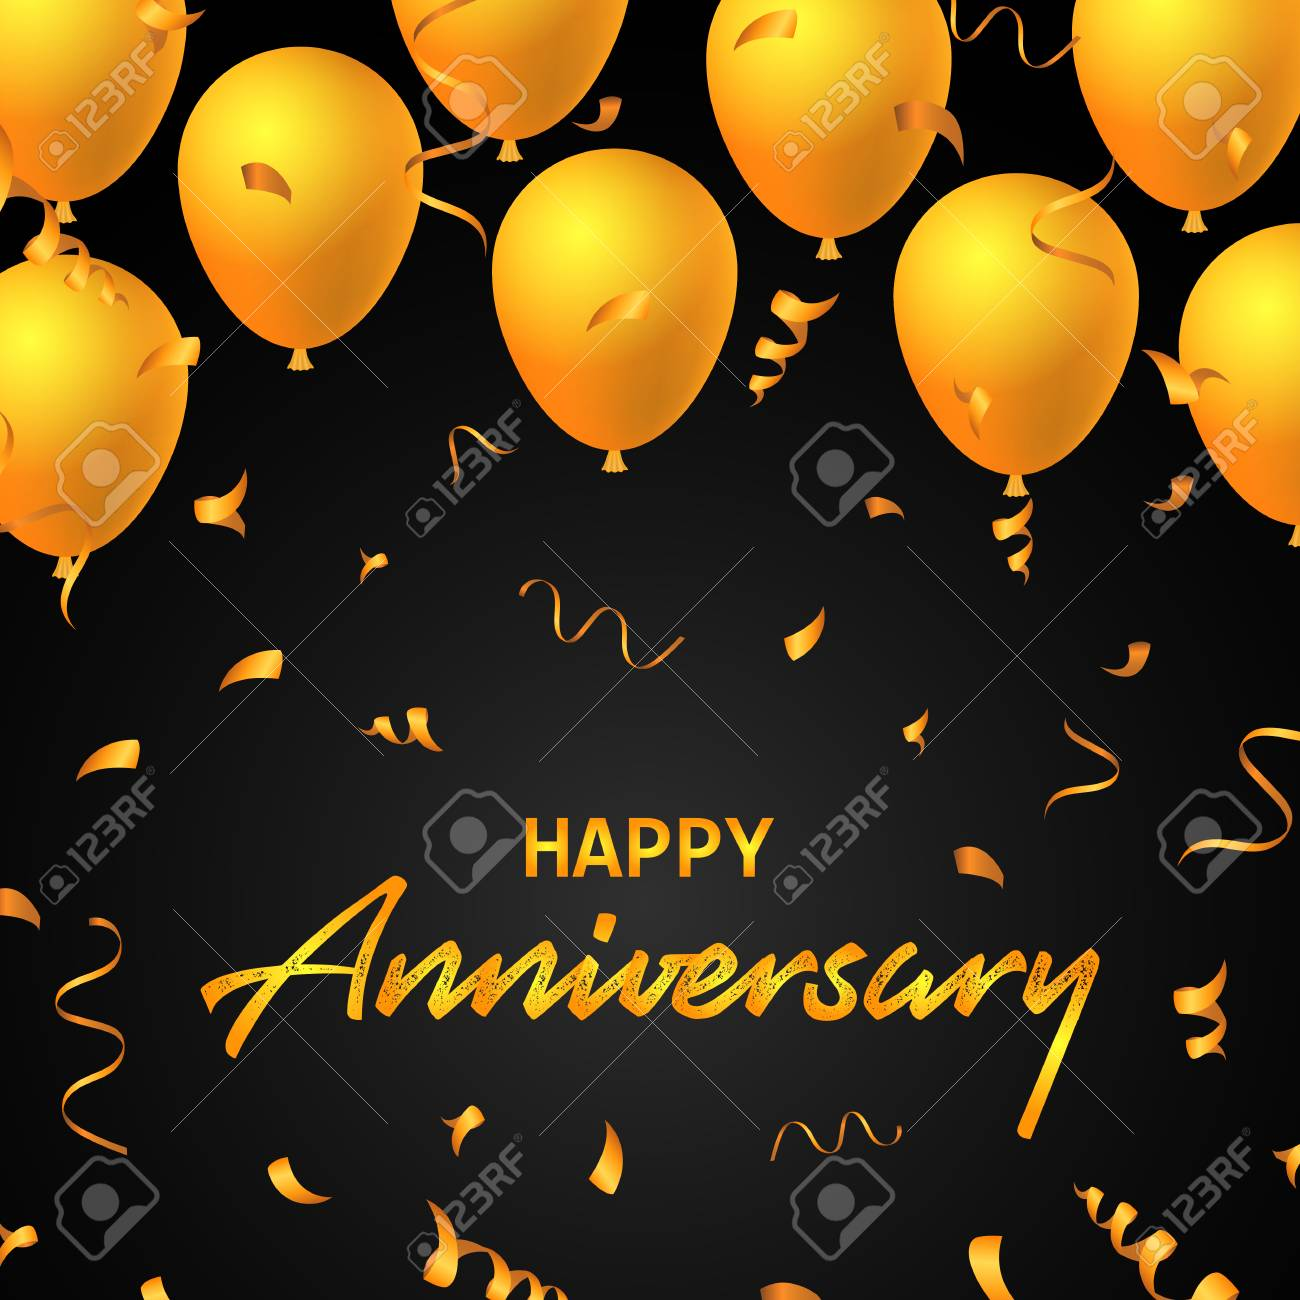 happy anniversary balloons typography banner background illustration